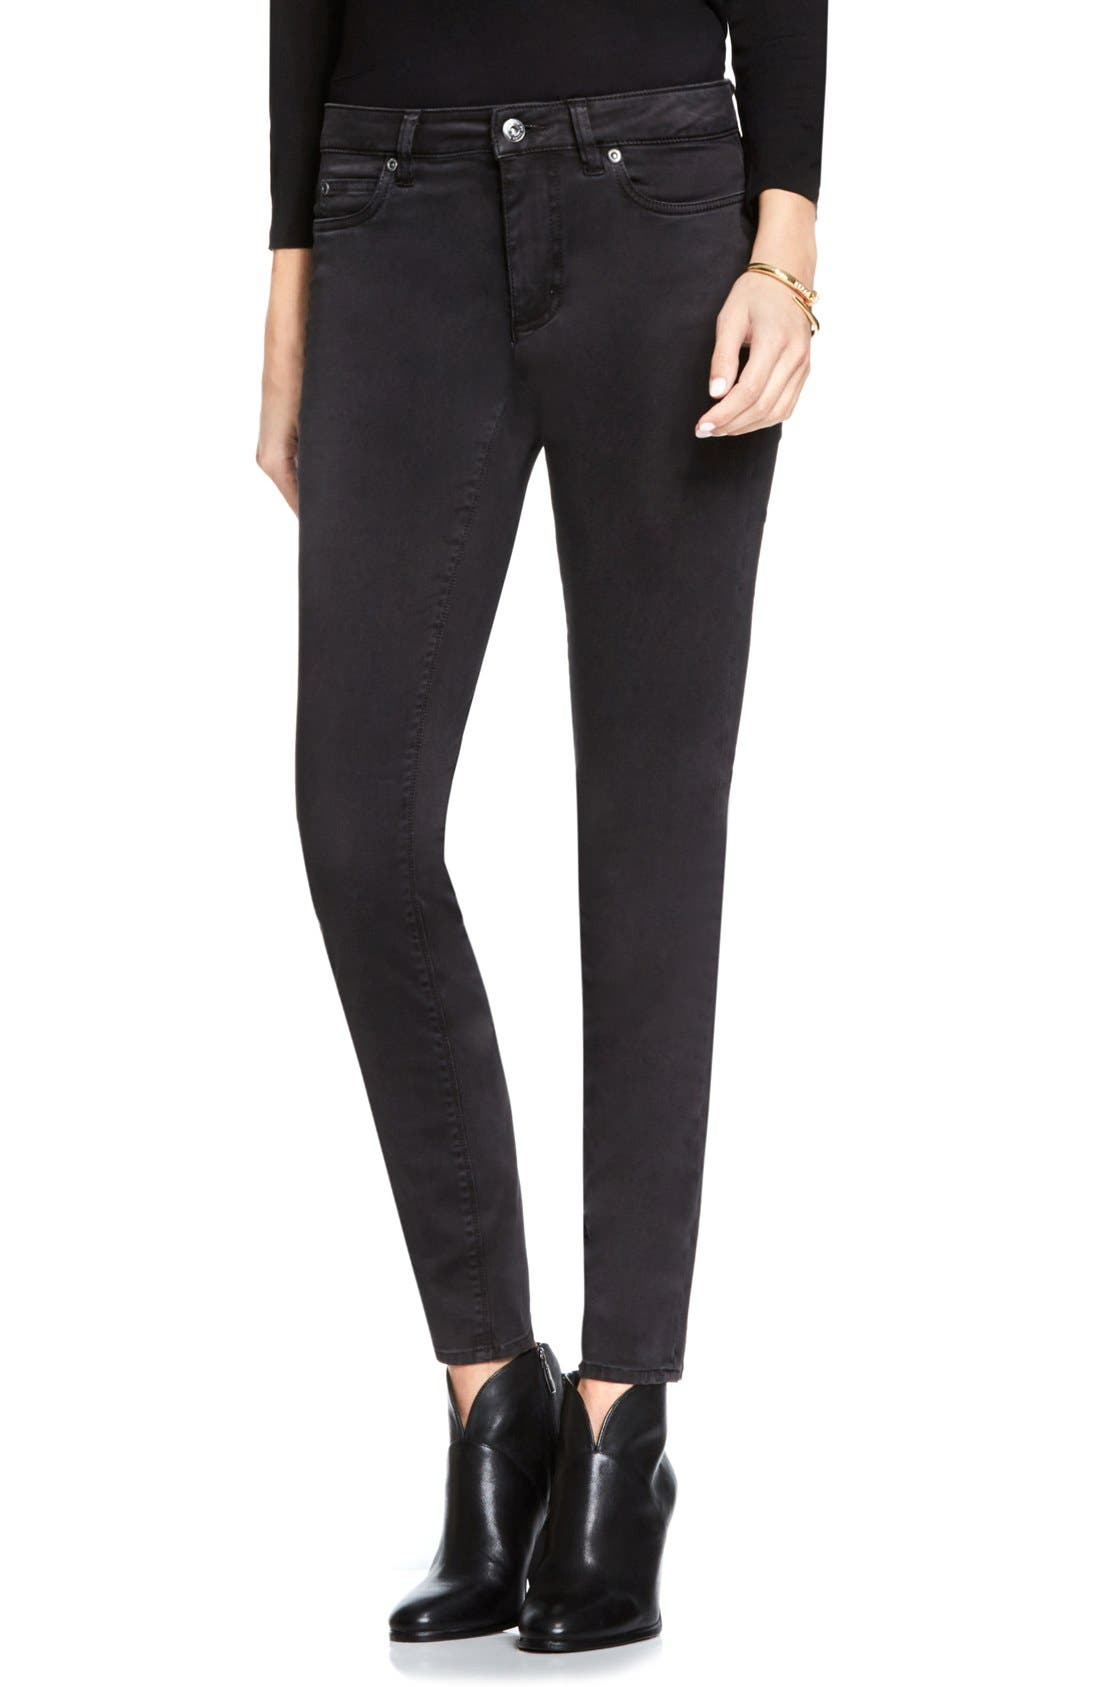 Alternate Image 1 Selected - Two by Vince Camuto Colored Five Pocket Skinny Jeans